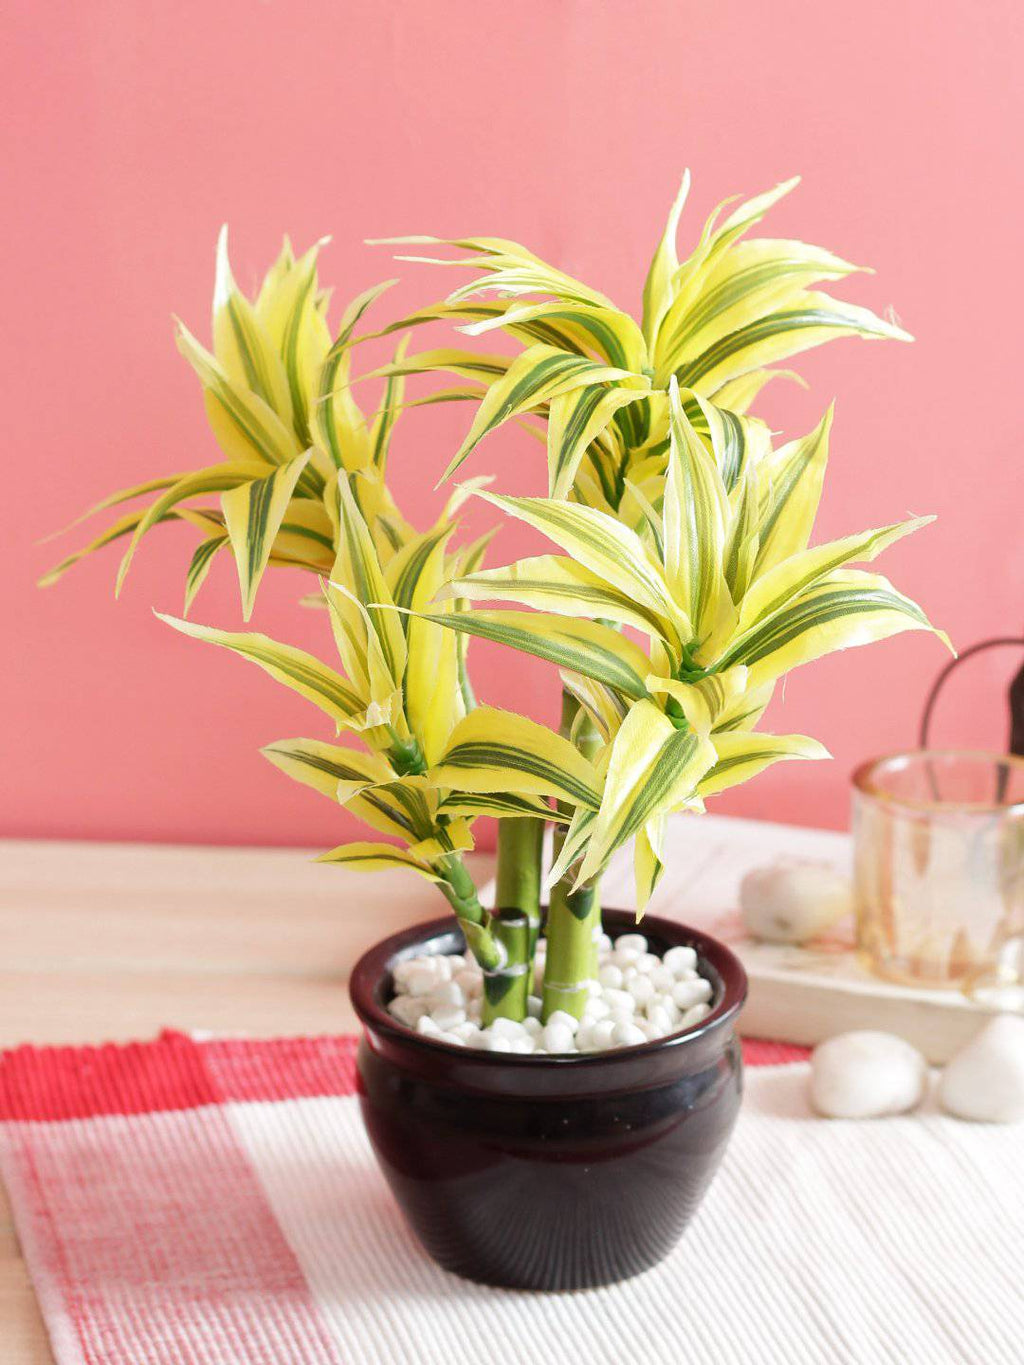 PolliNation Premium White Dracaena Artificial Bonsai Plant with Black Ceramic Pot